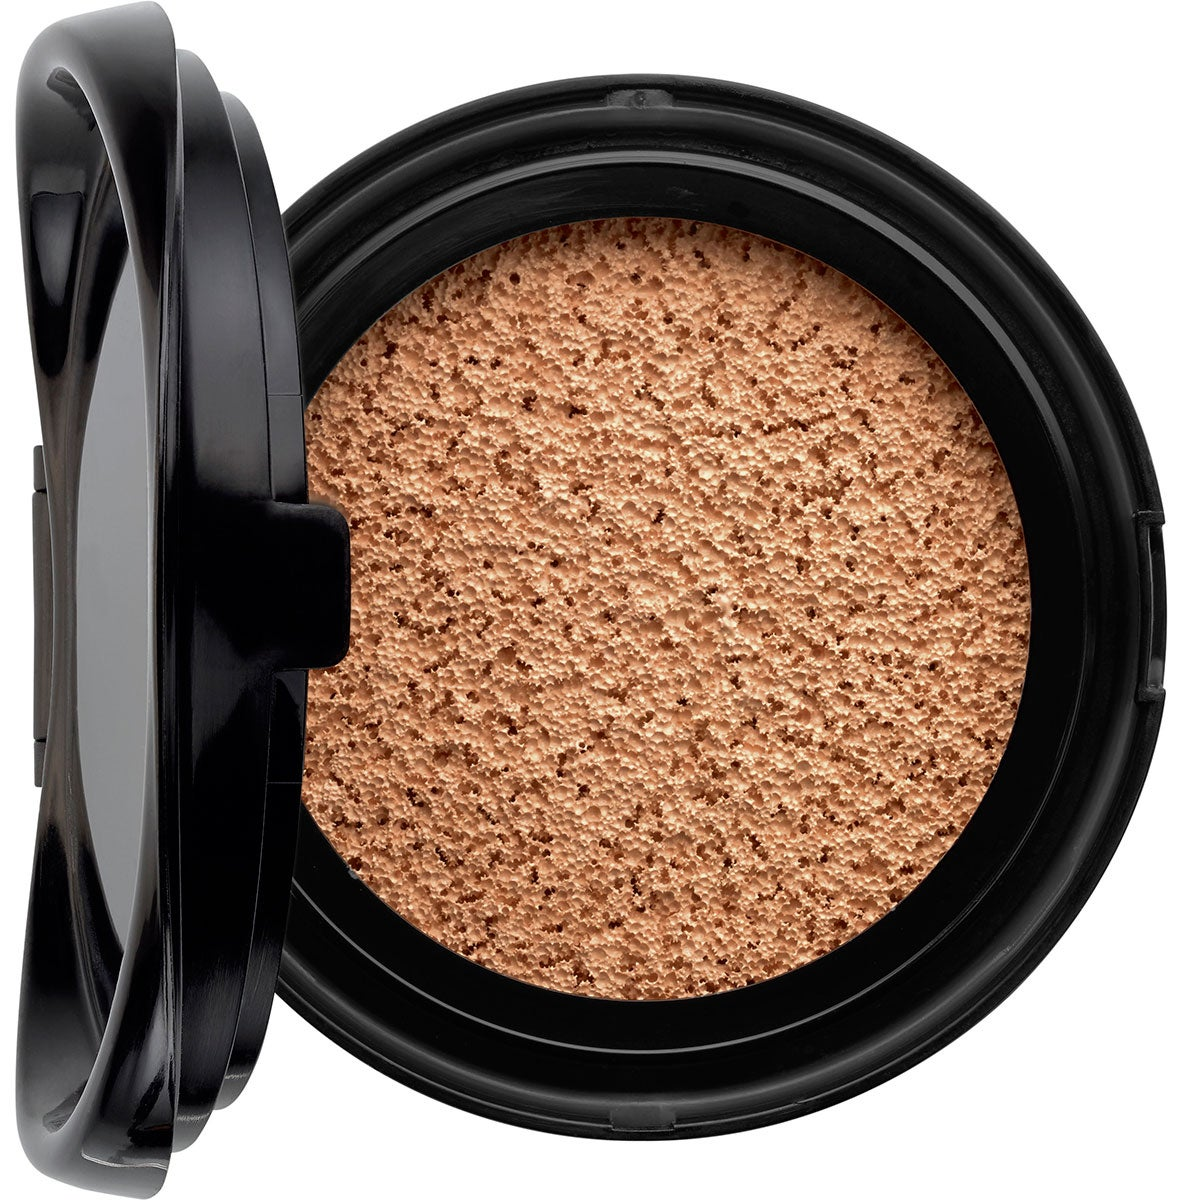 Yves Saint Laurent Encre de Peau Cushion Foundation Refill